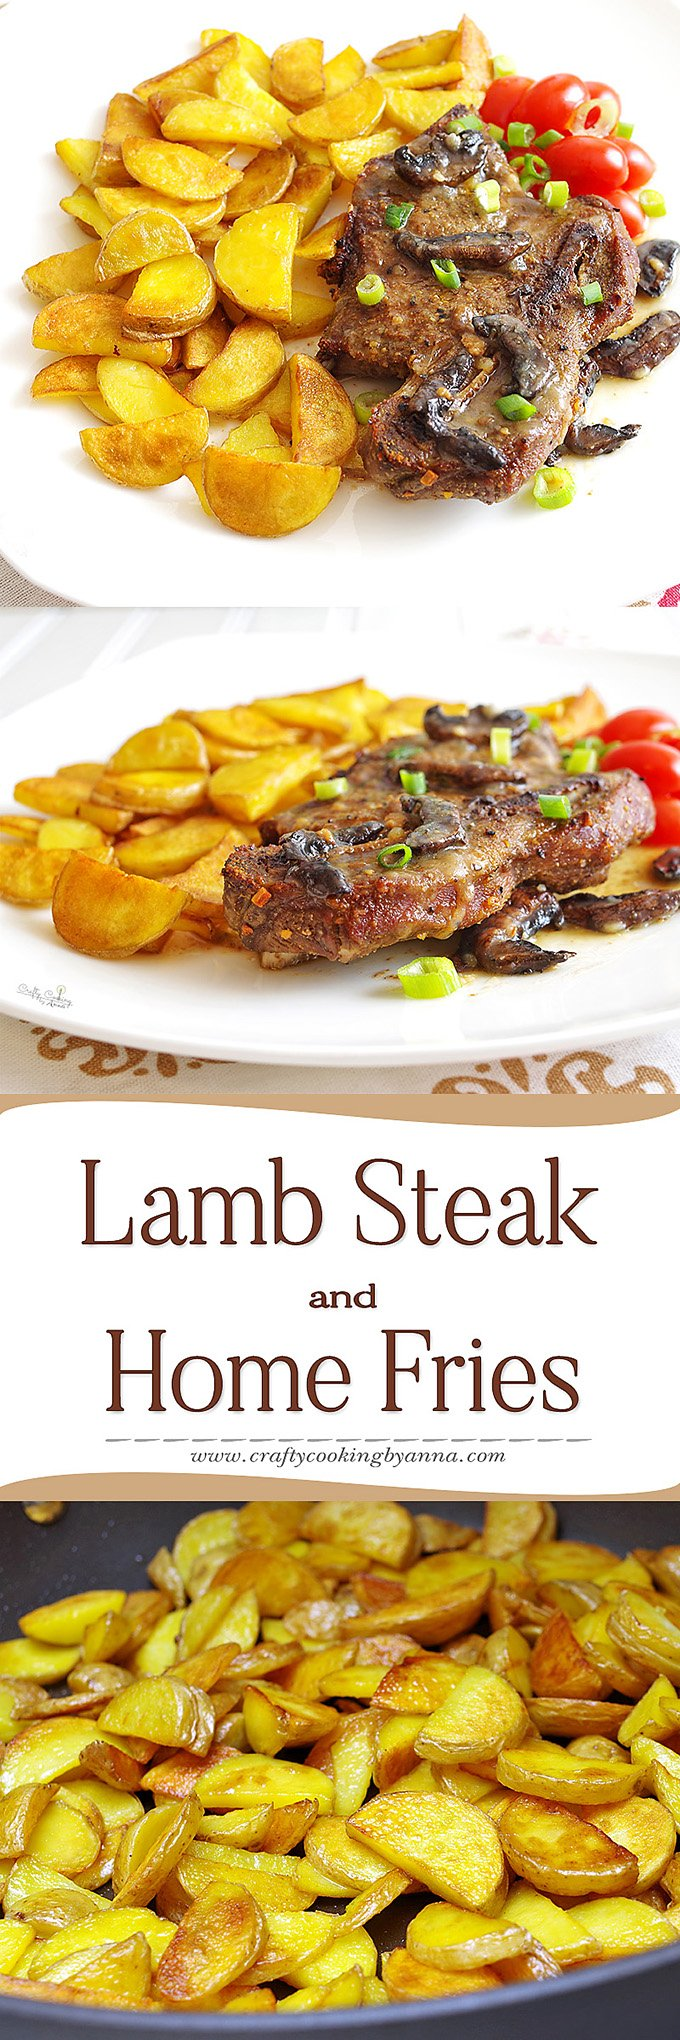 Lamb Steak dinner